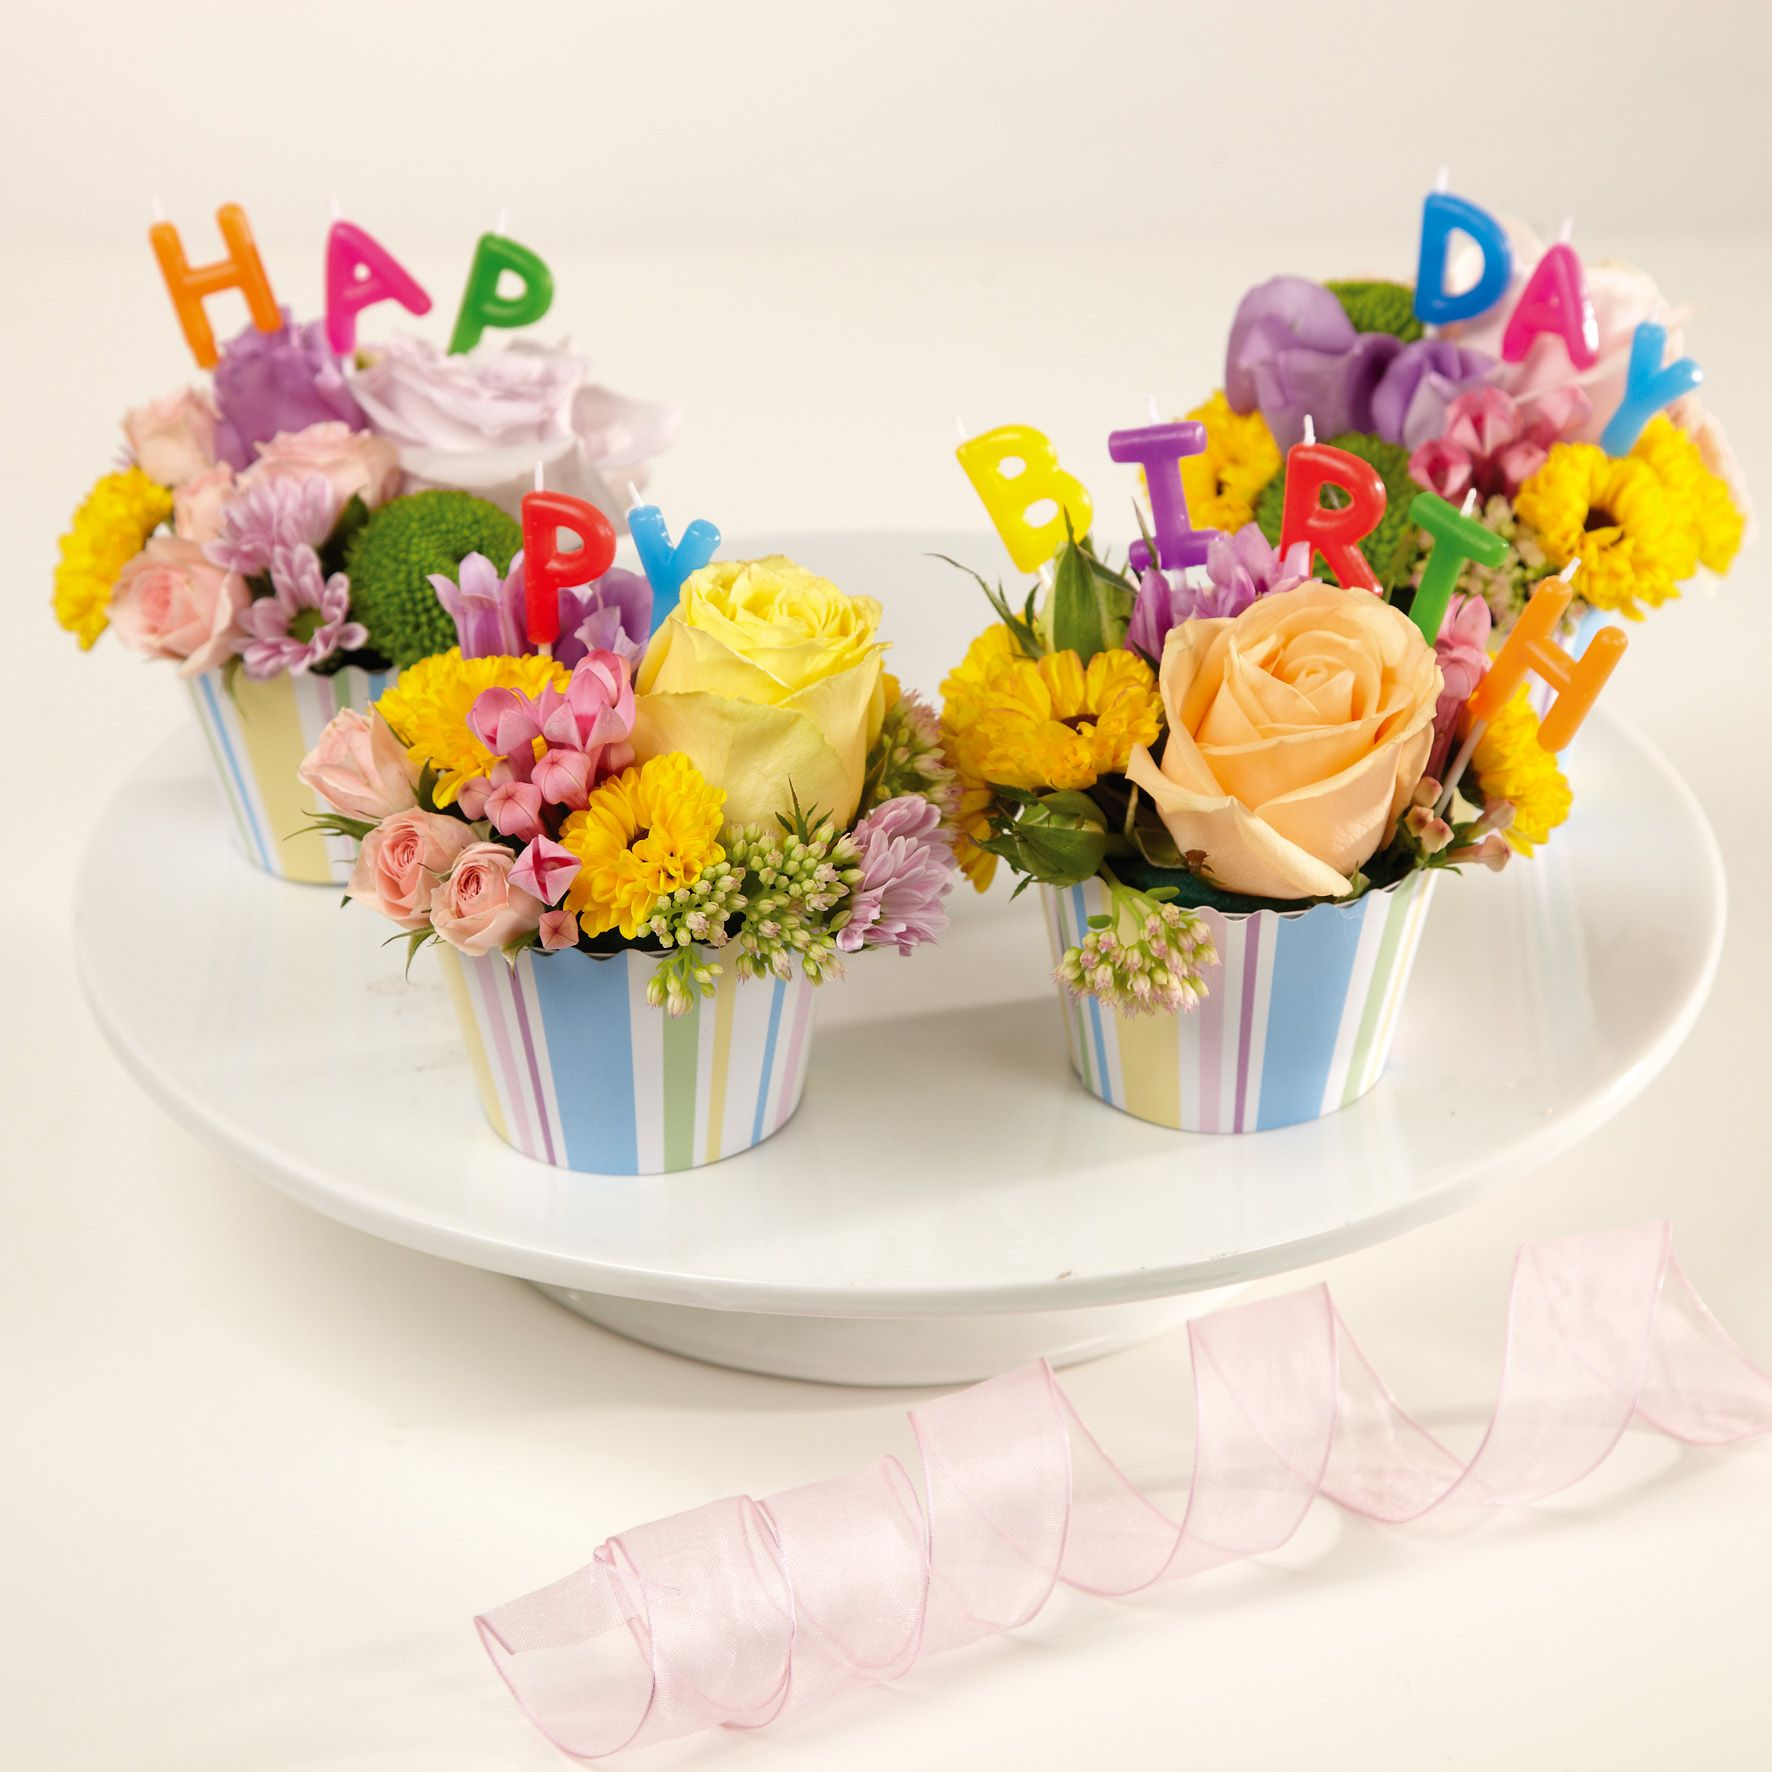 Happy birthday oasis floral cupcakes pinterest happy birthday